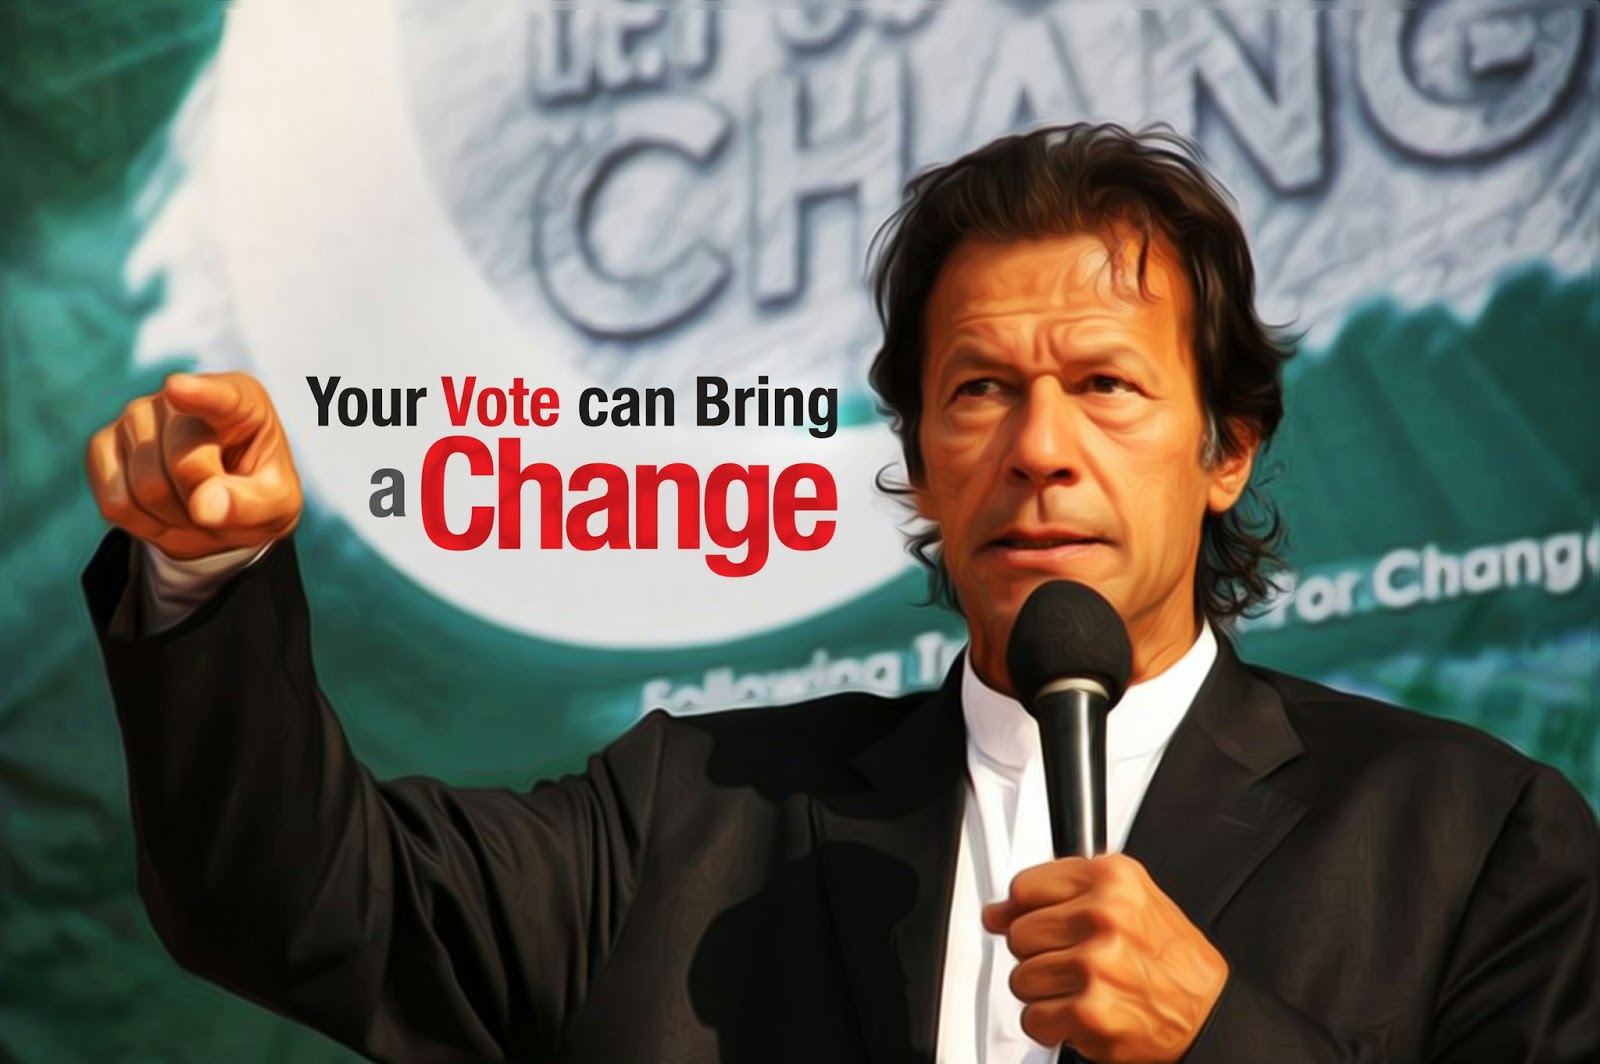 Imran Khan_Change